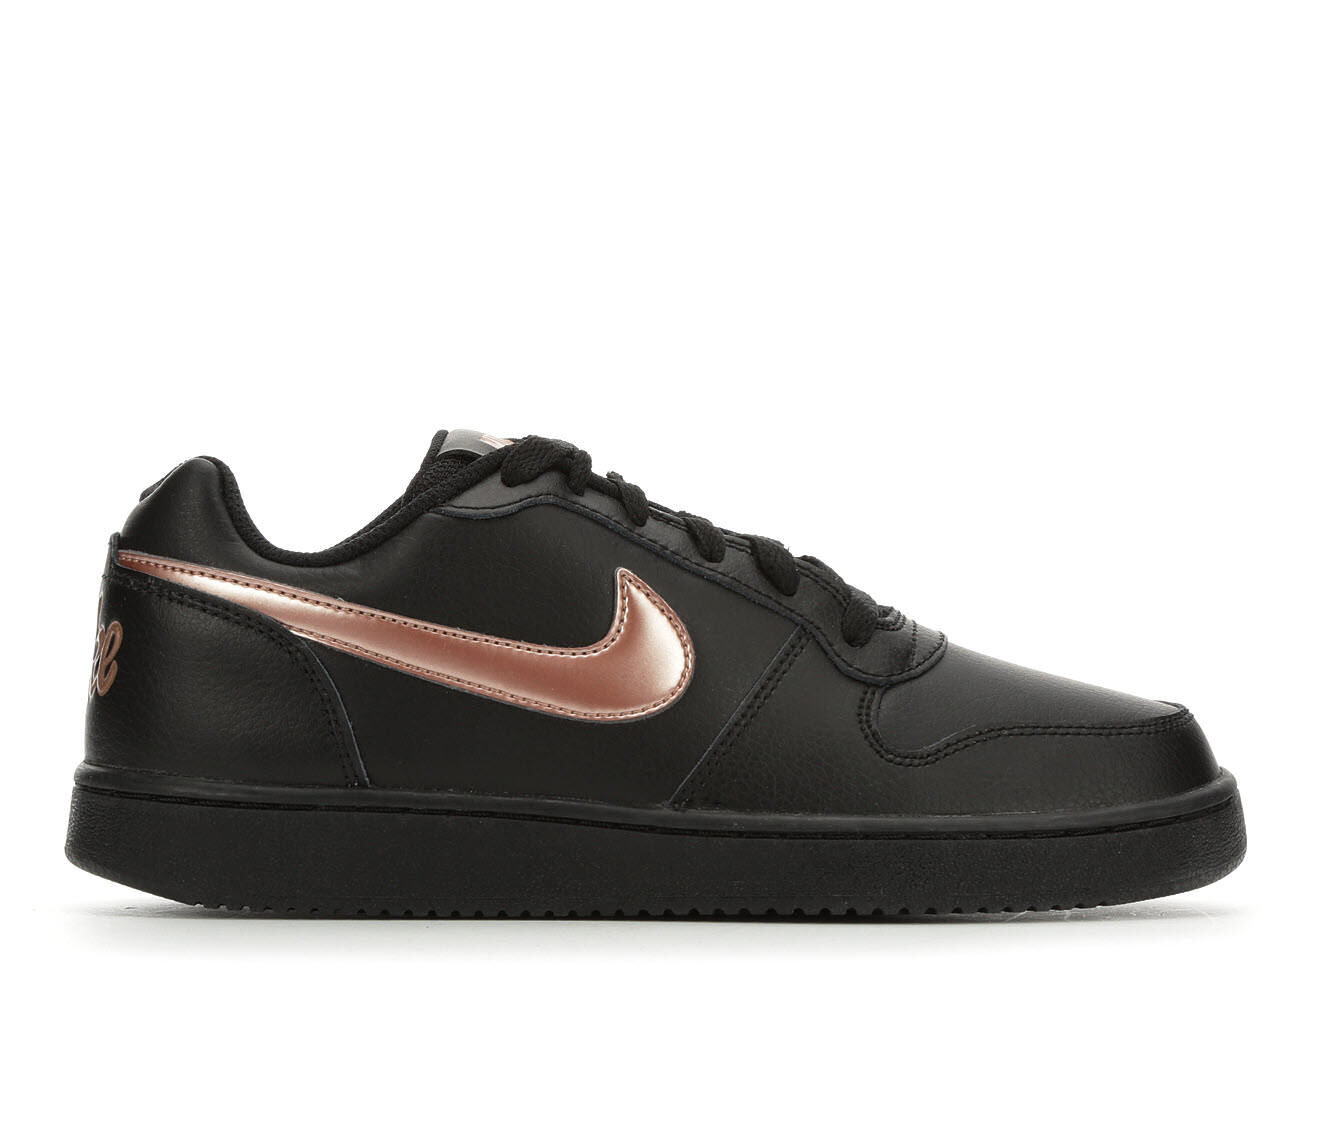 choose authentic new Women's Nike Ebernon Low Basketball Shoes Blk/Red Bronze